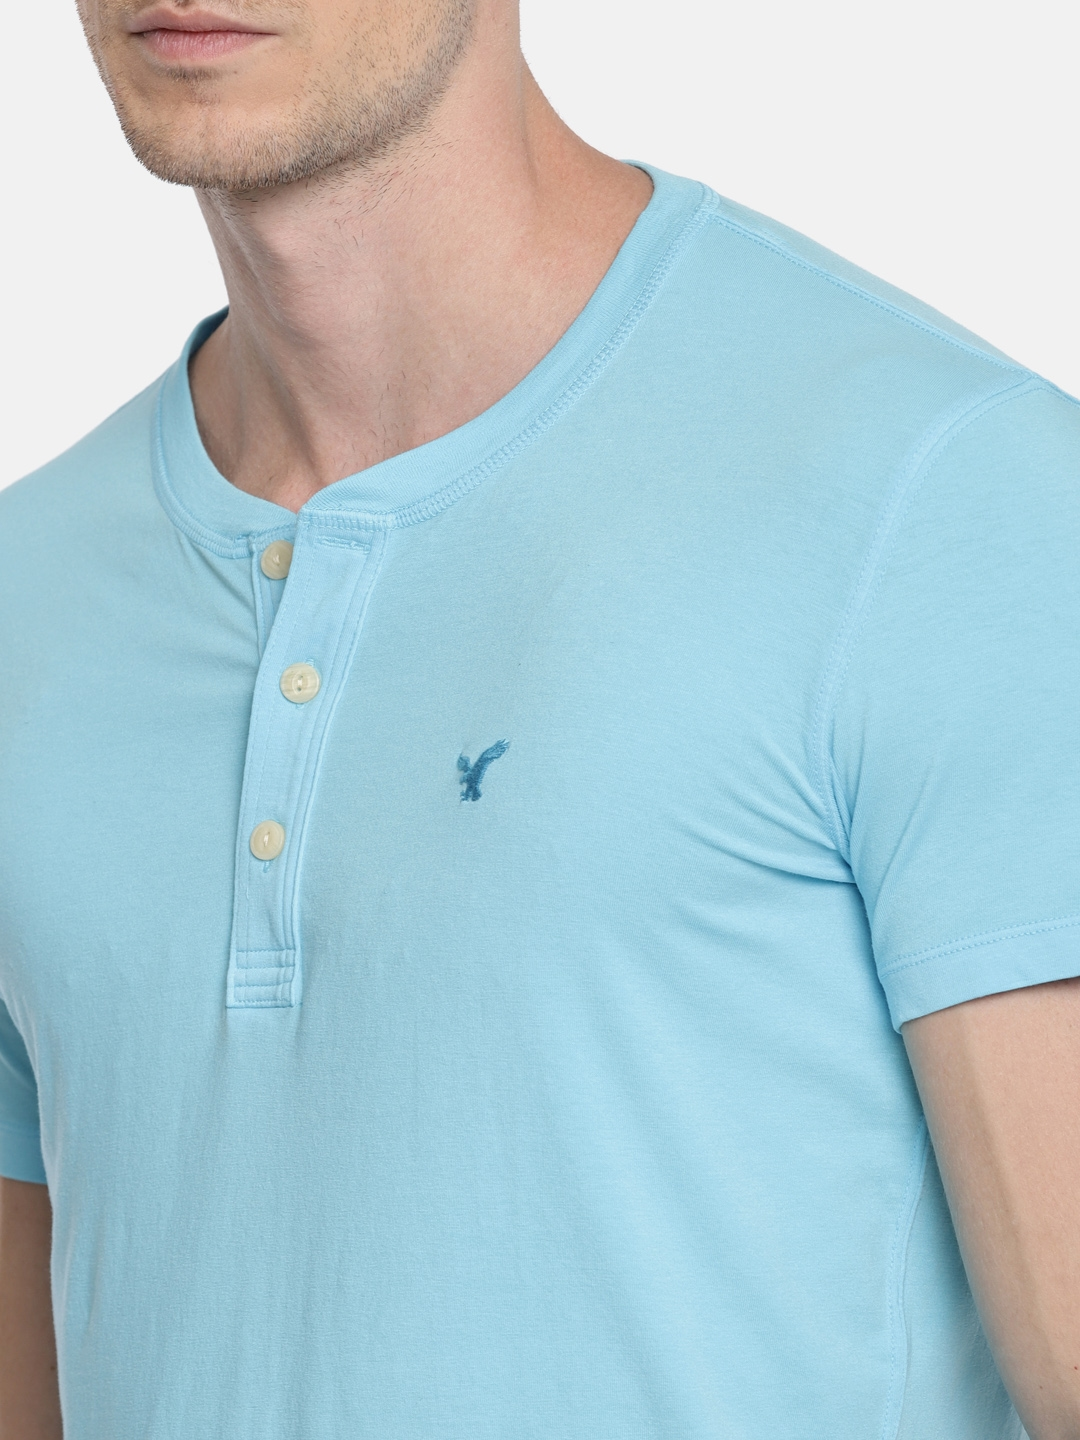 fc1f7a008097a Buy AMERICAN EAGLE OUTFITTERS Men Blue Solid Henley Neck T Shirt ...